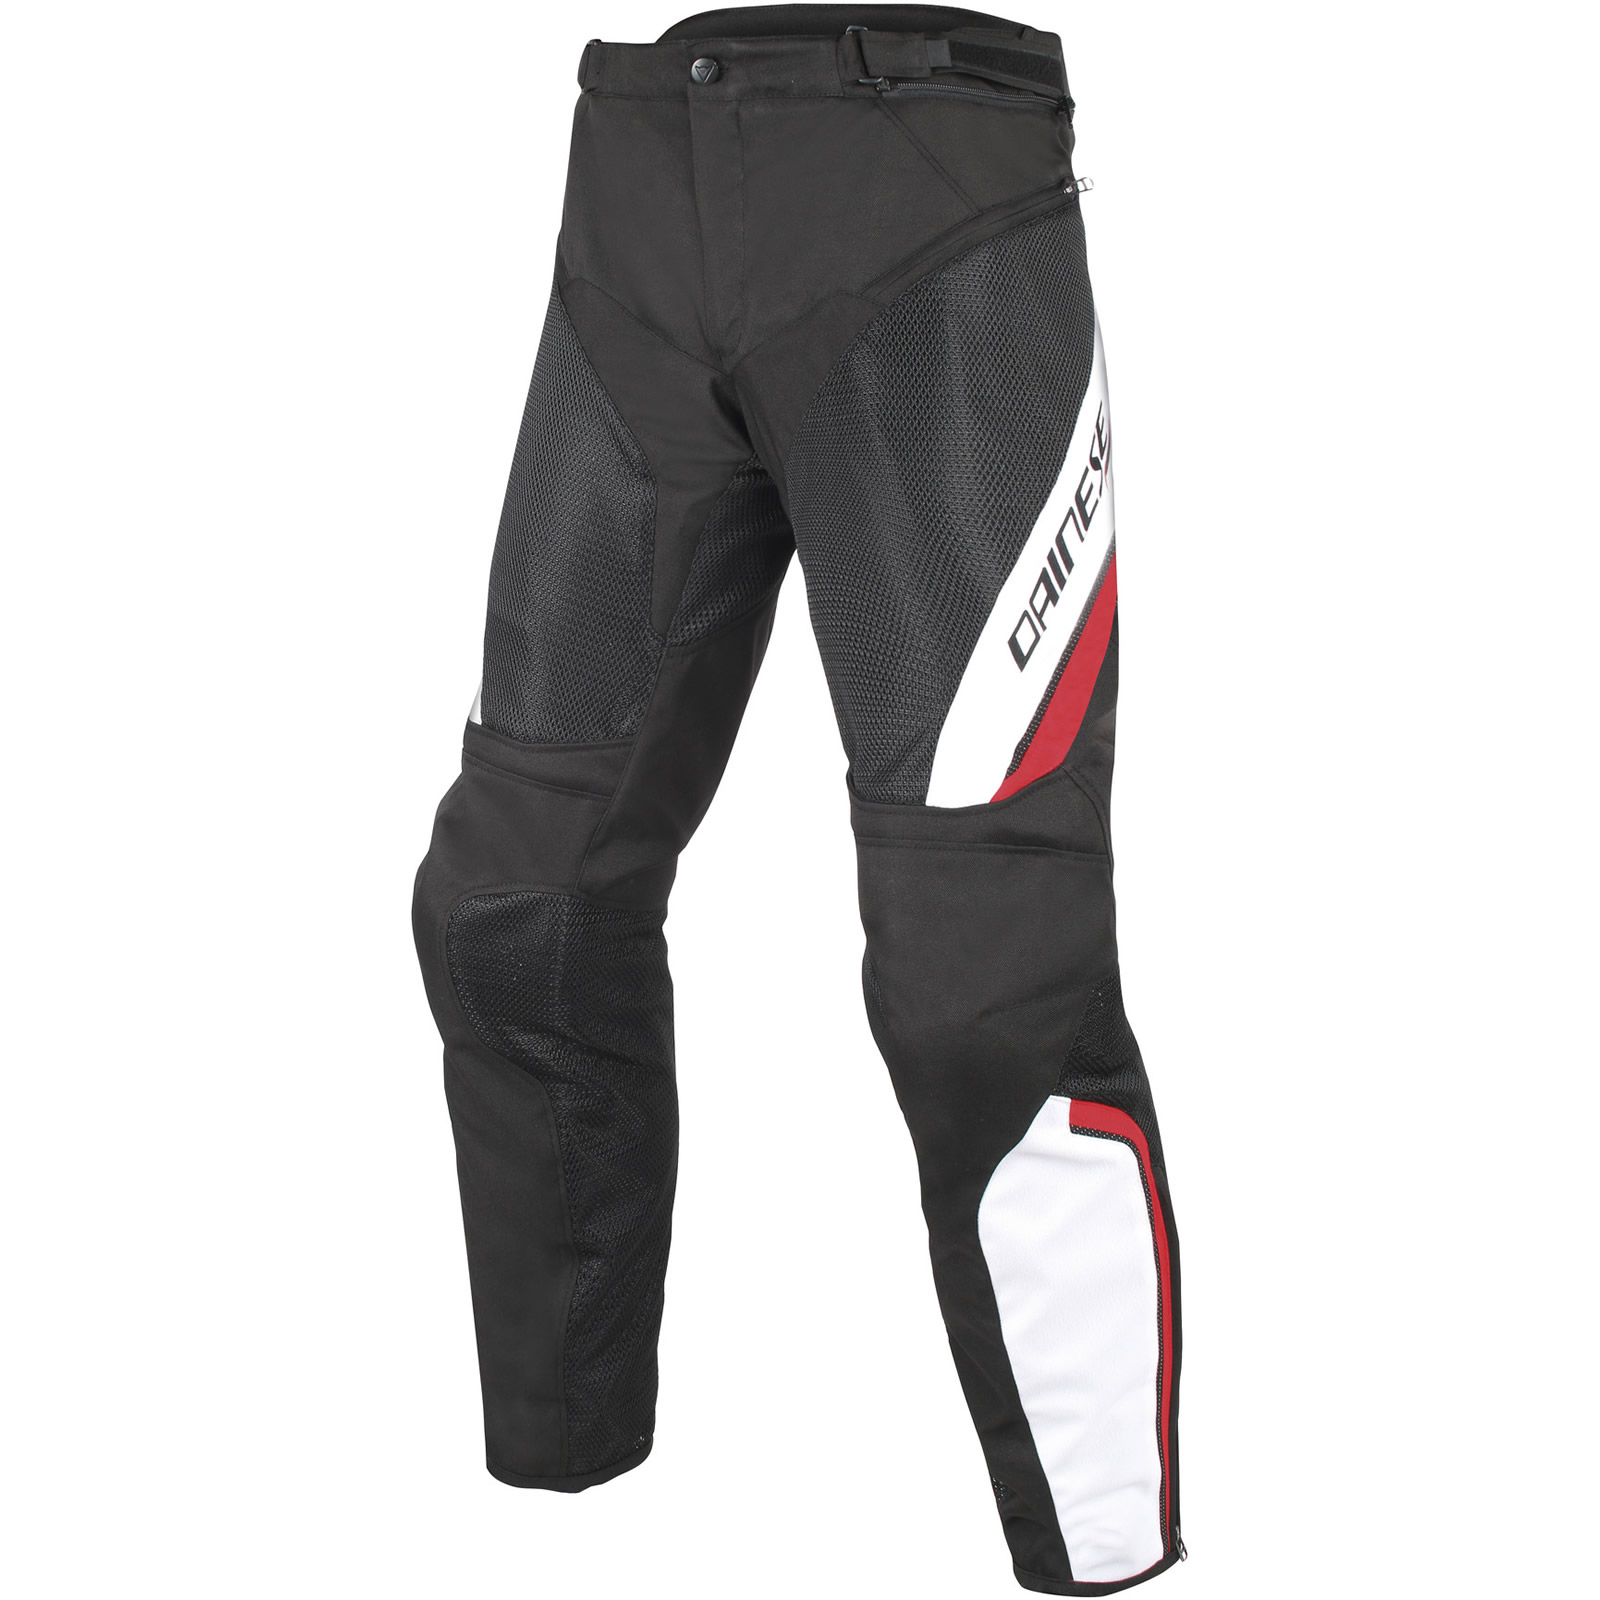 d7ef331b9bcf Dainese Drake Air D-Dry Motorcycle Trousers Motorbike Protective ...